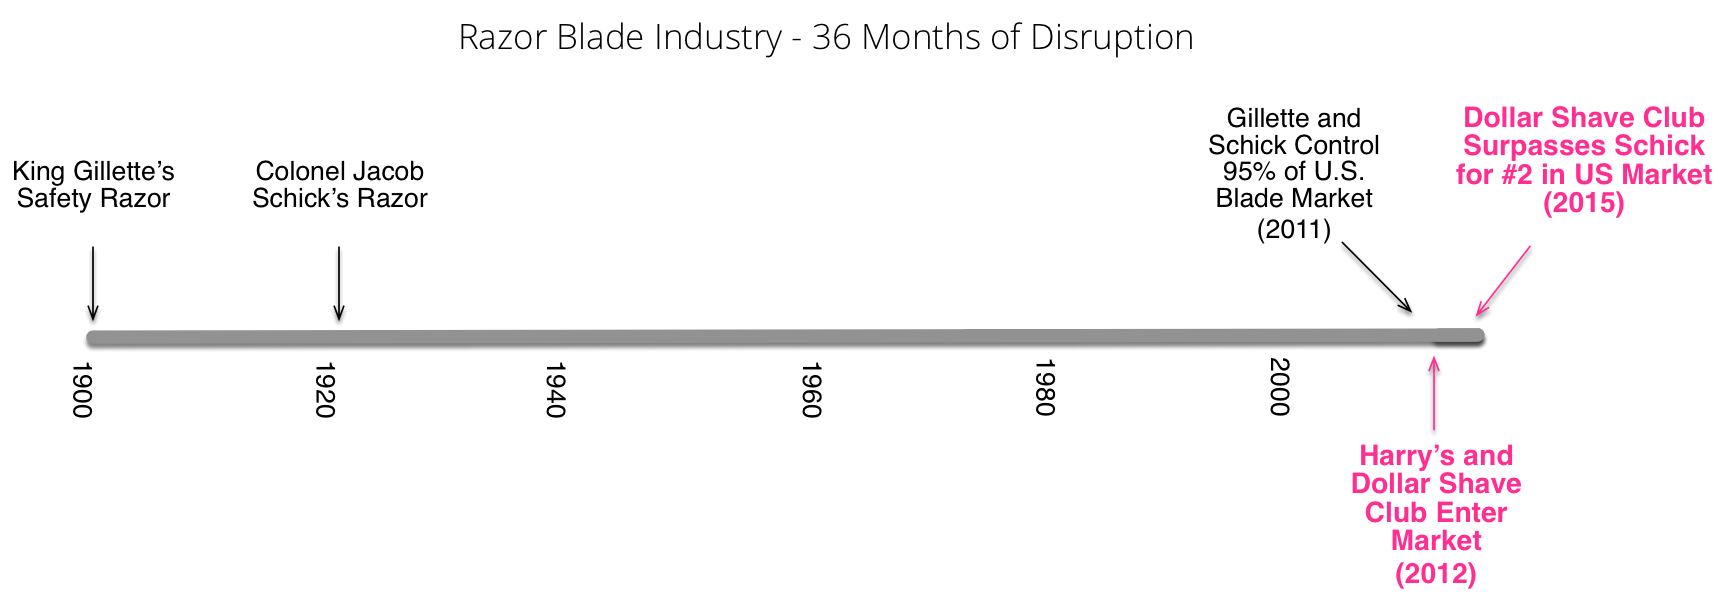 Razor Industry History of Change.png